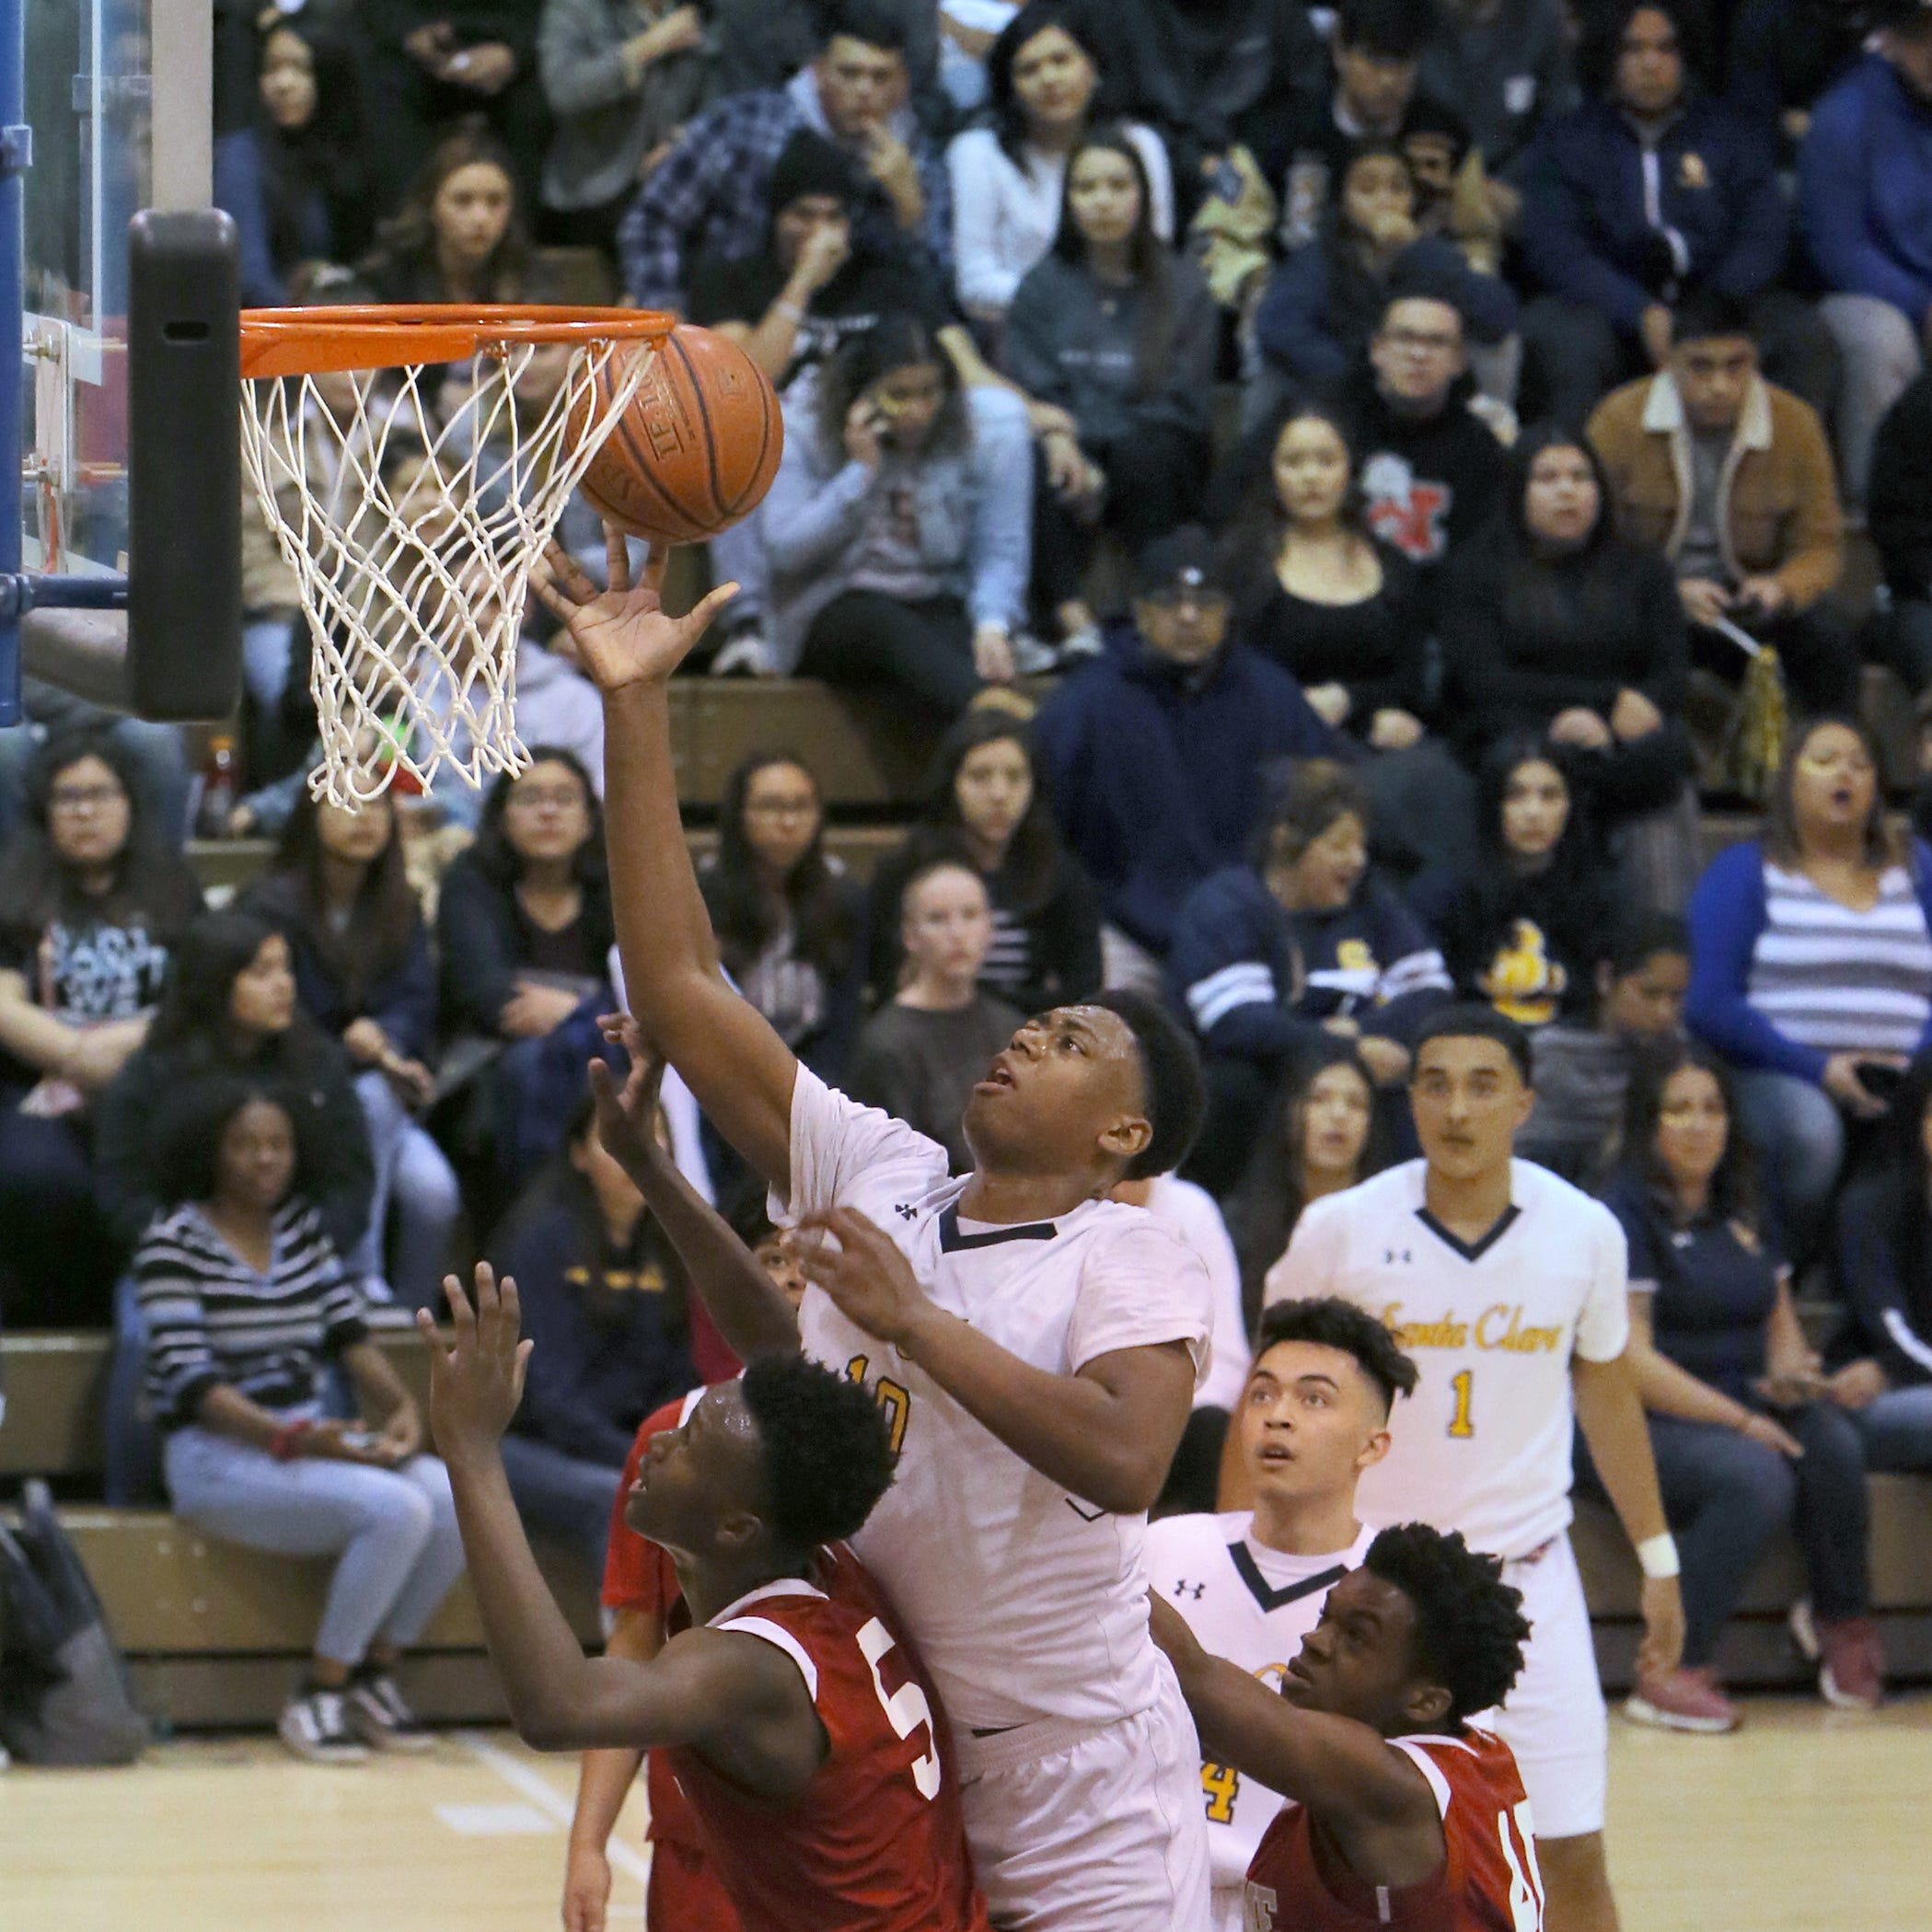 Santa Clara beats Hueneme to reach CIF-SS Division 5AA boys basketball title game